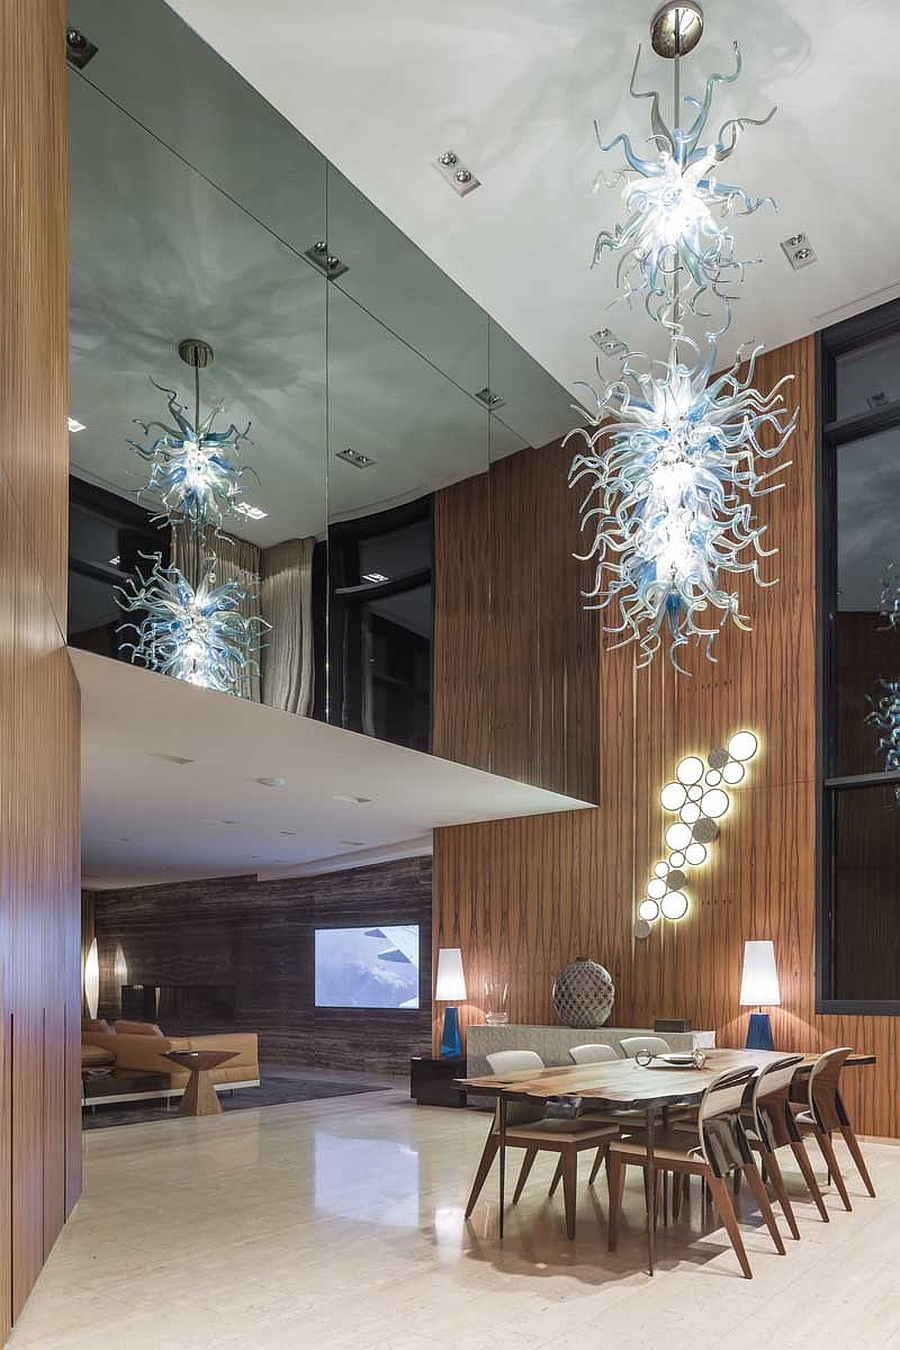 Stunning chandelier enlivens the dining area